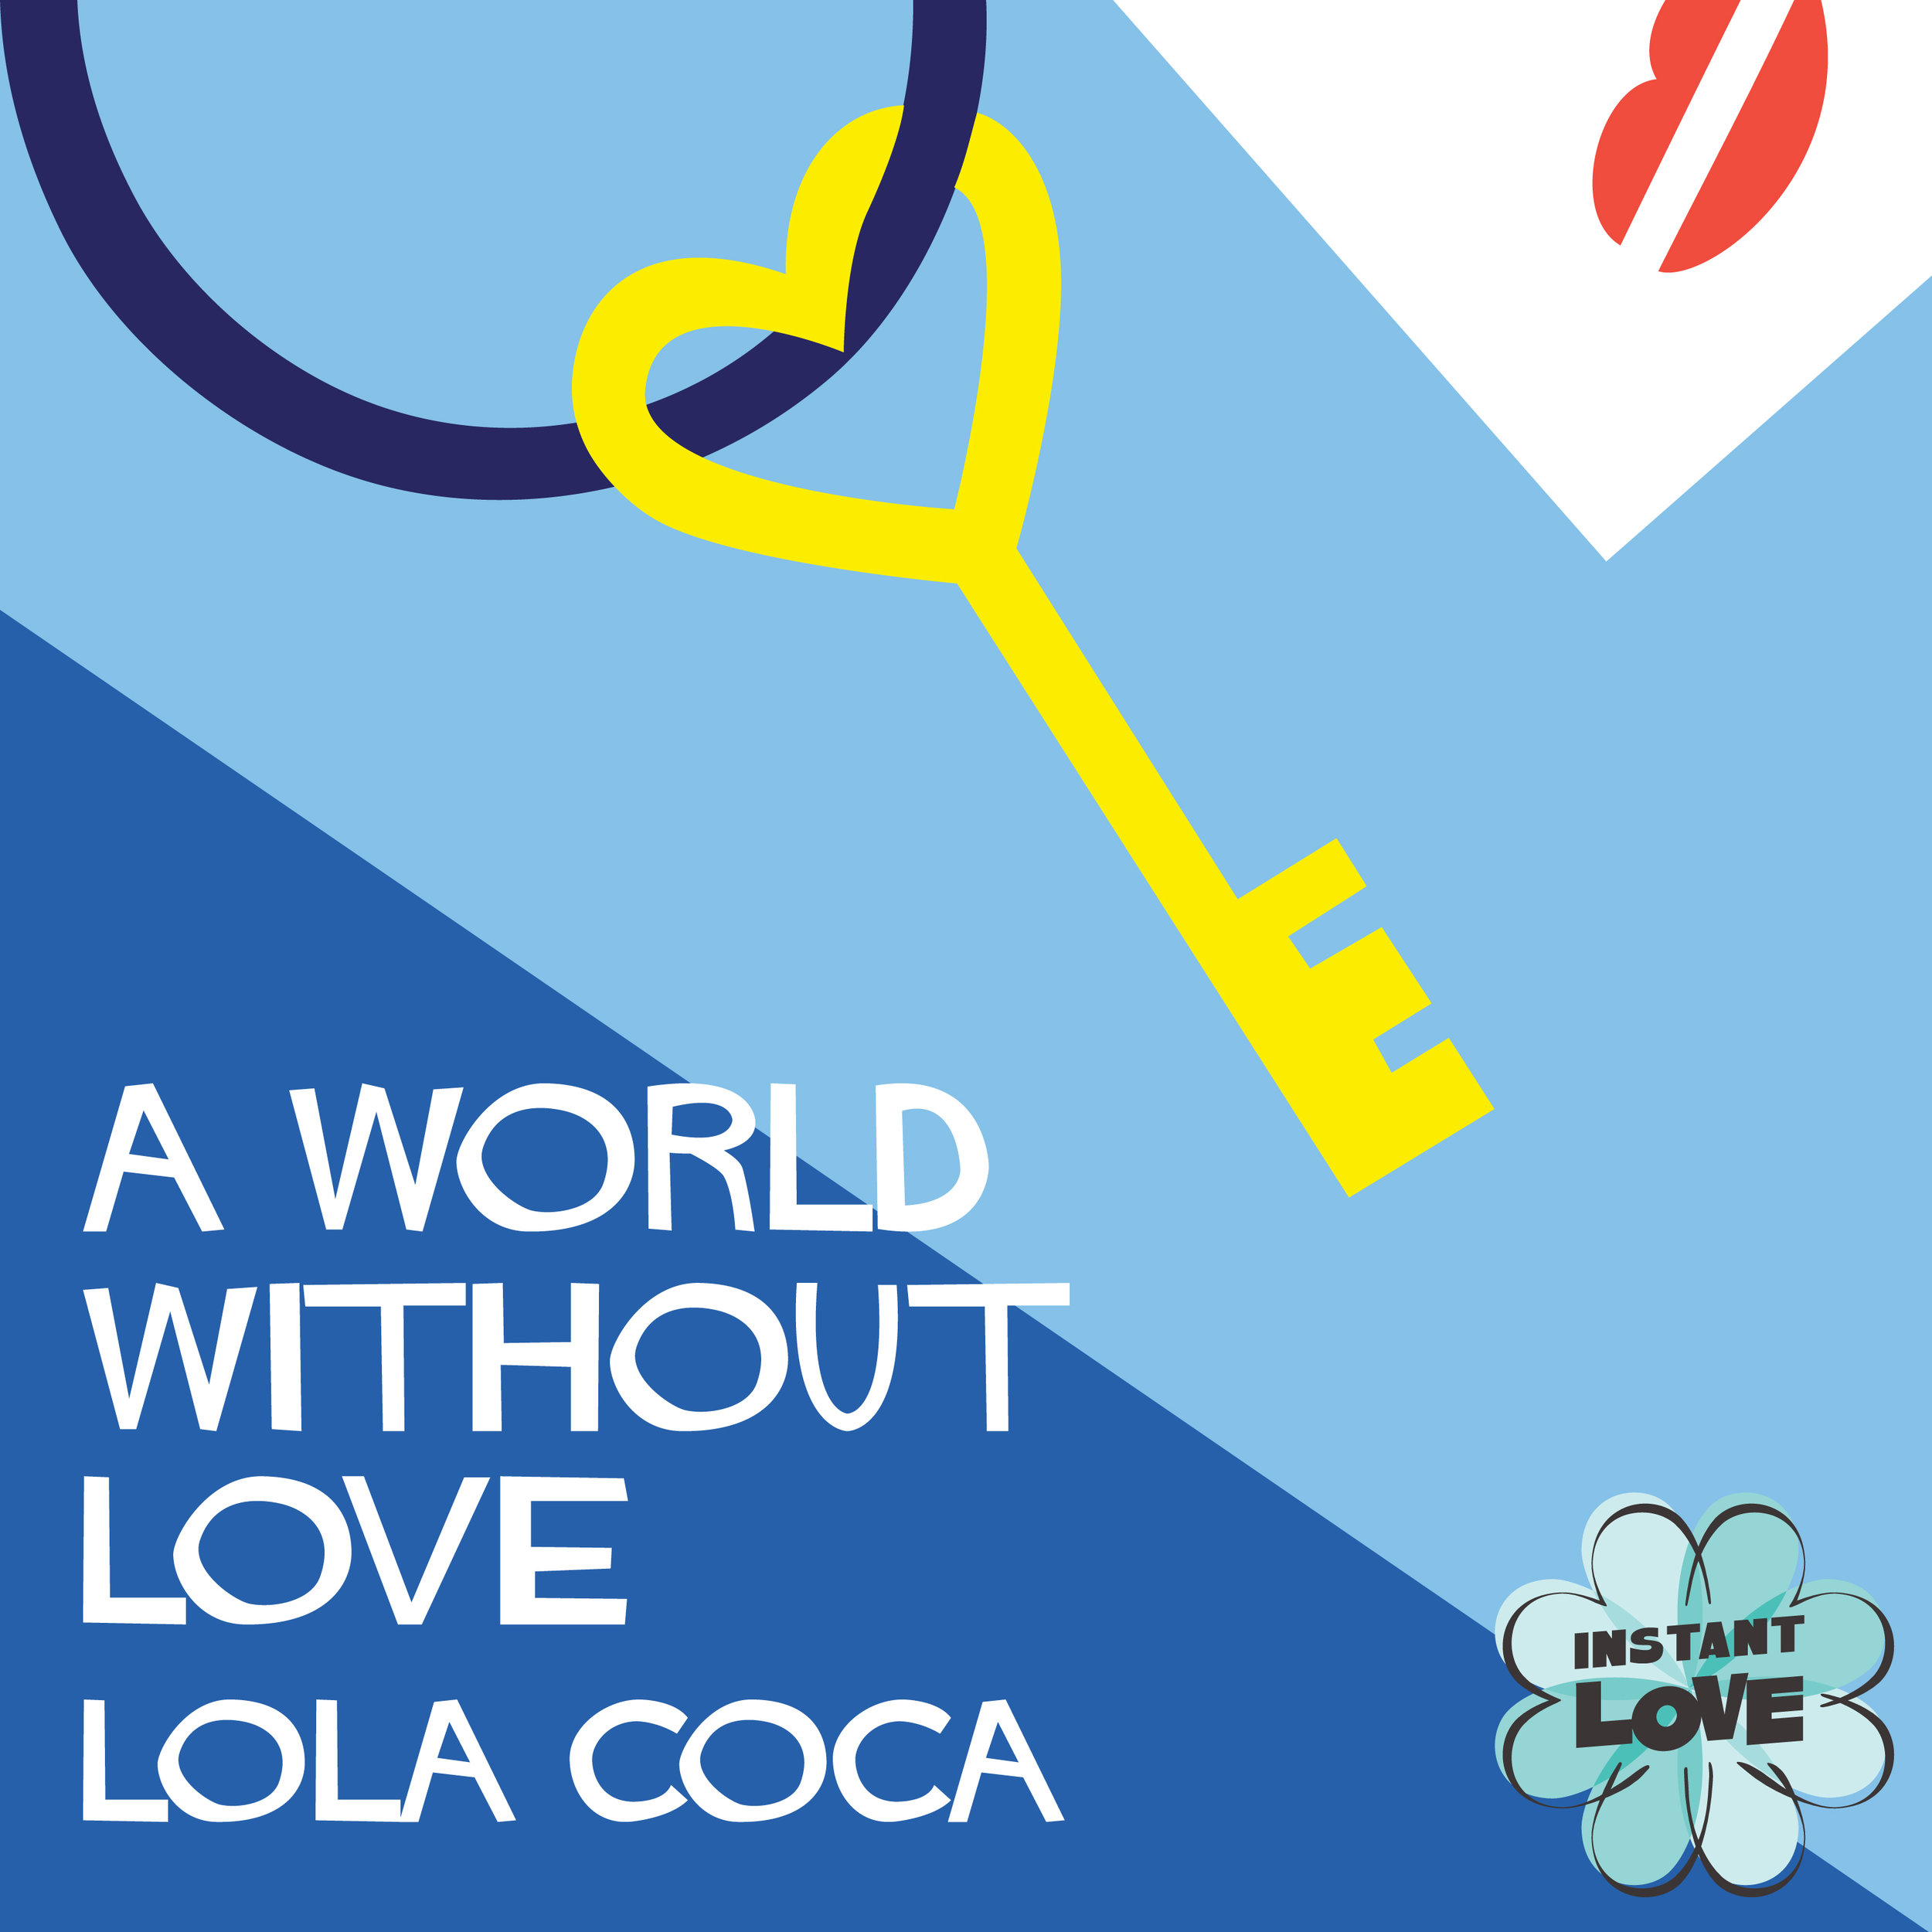 A World Without Love_Lola Coca.jpg